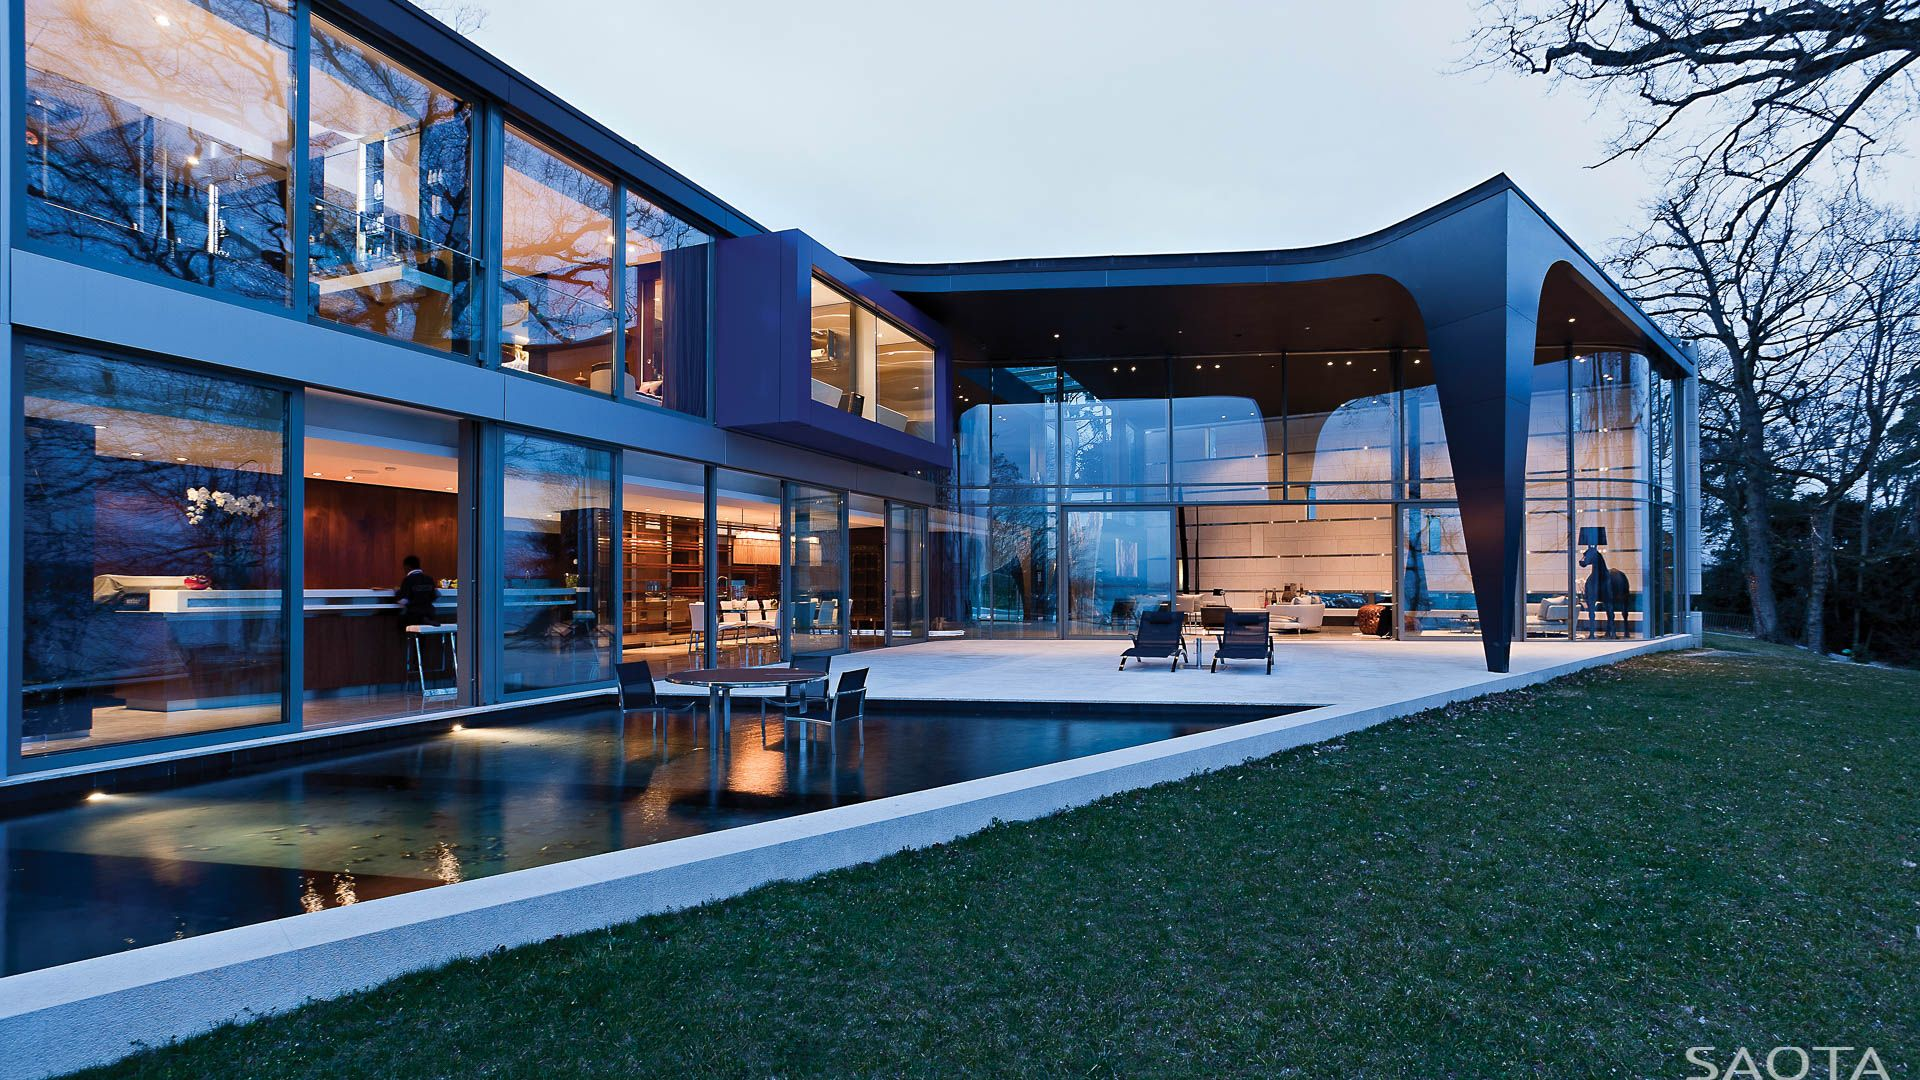 Ch lake house a contemporary residence and office guest annex on lake geneva switzerland powerful sculptural forms and lines and the use of